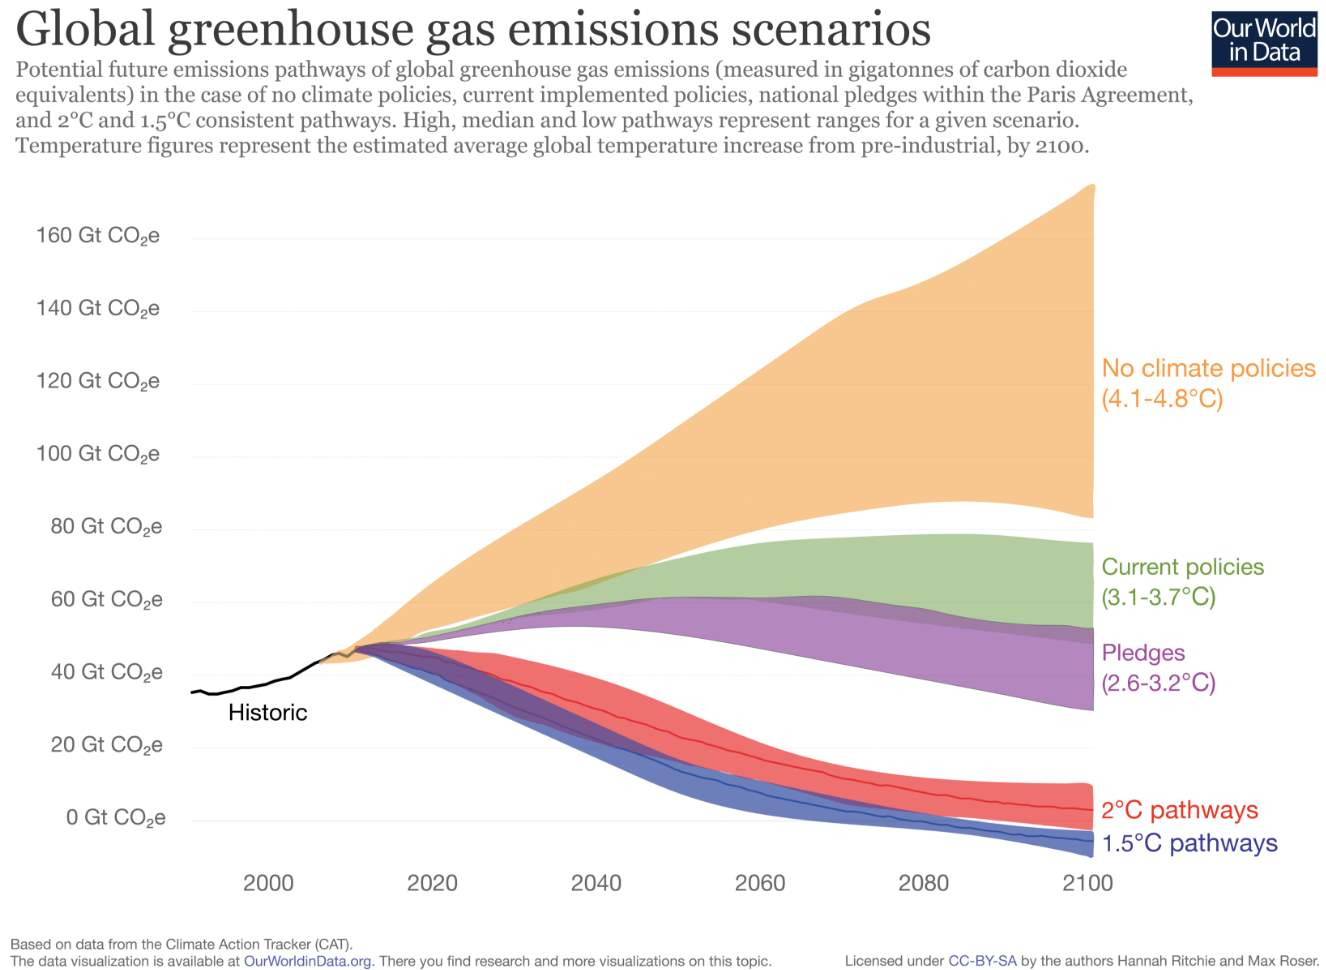 Global future greenhouse gas emission scenarios